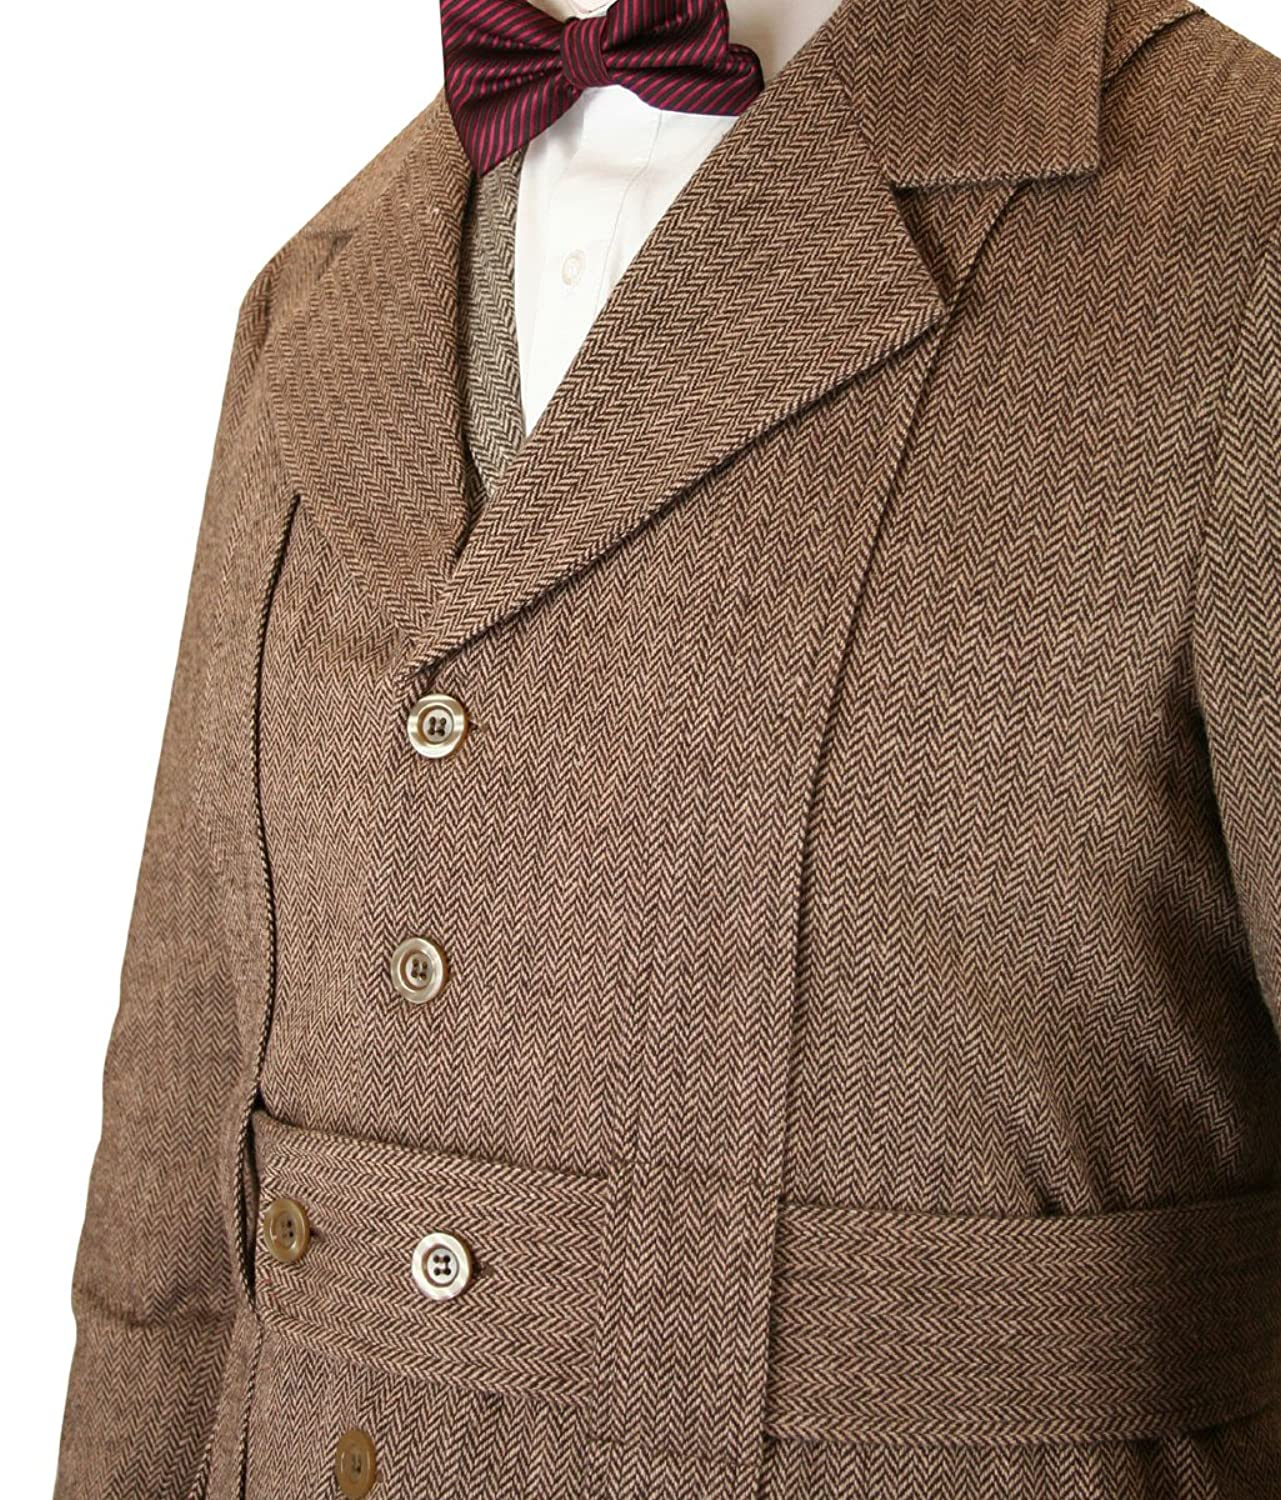 Men's Steampunk Clothing, Costumes, Fashion Historical Emporium Mens Norfolk Wool Blend Herringbone Tweed Jacket $149.95 AT vintagedancer.com